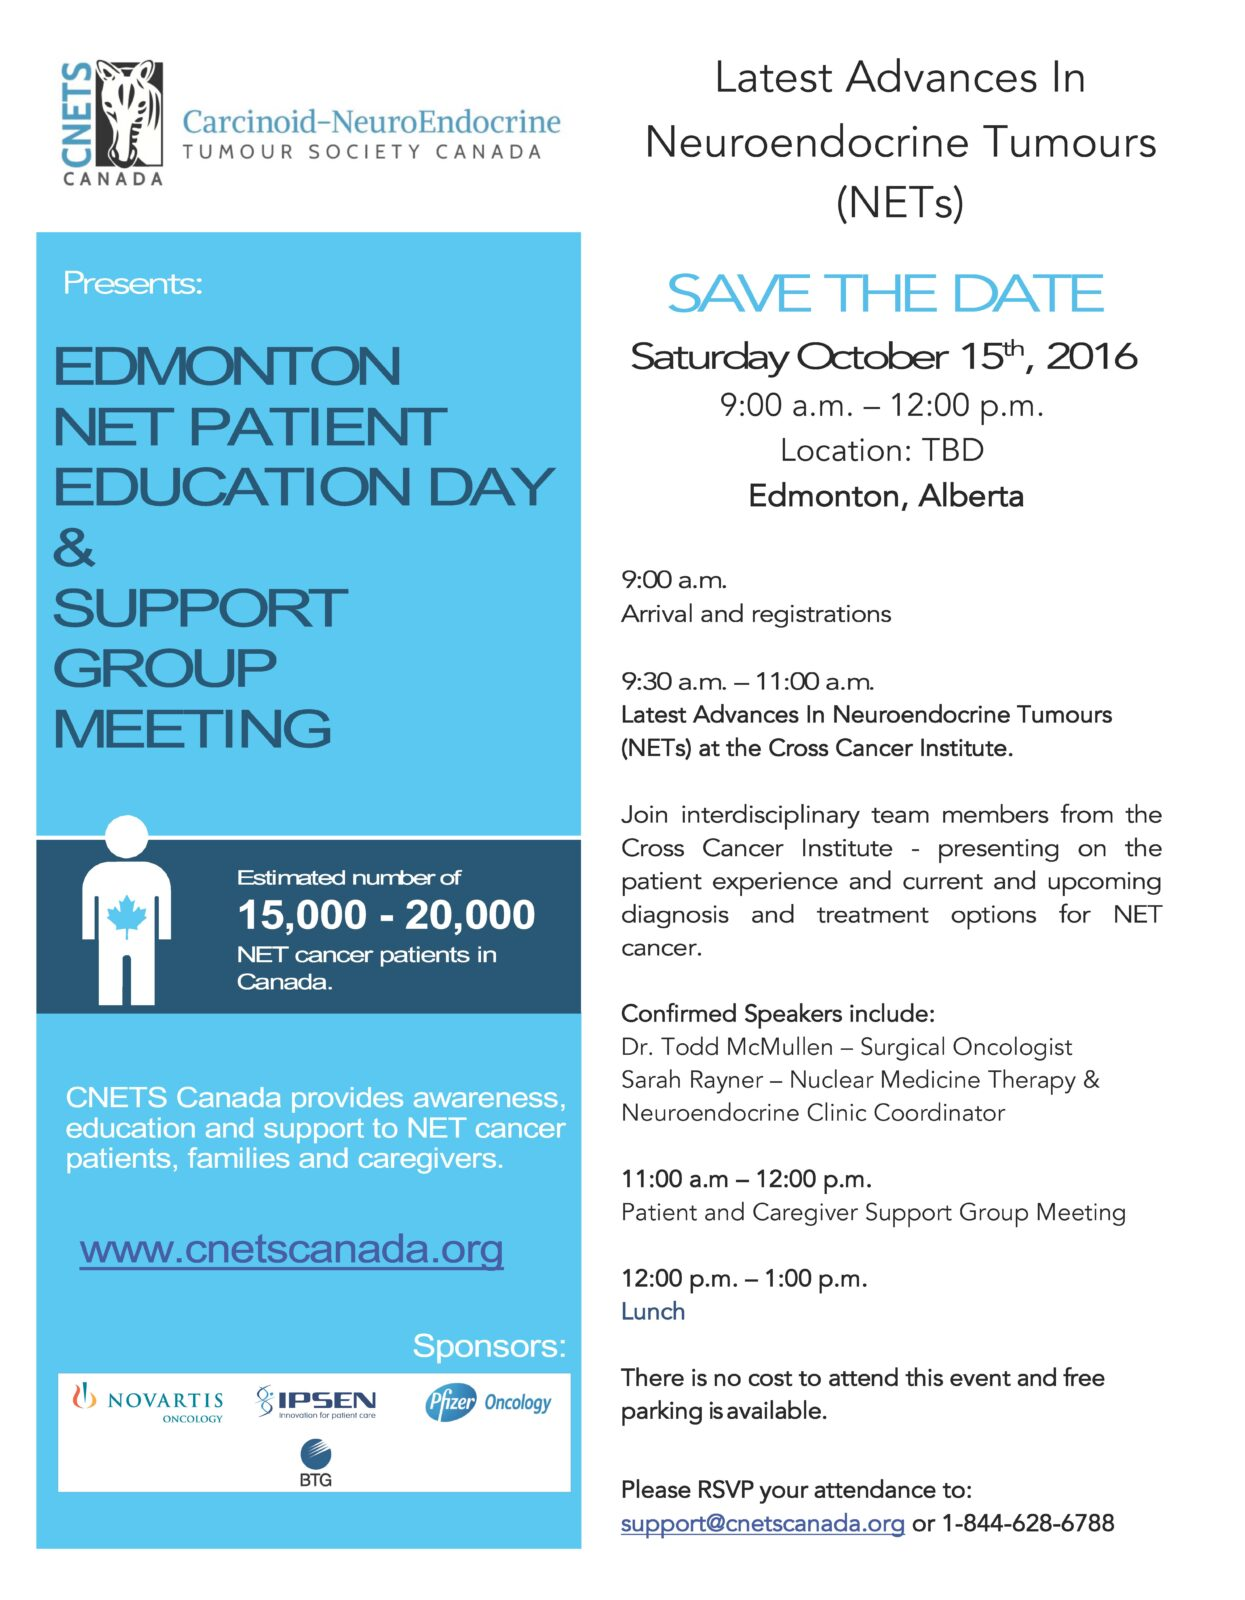 Edmonton Patient Education Day & Support Group Meeting @ TBD - Downton Edmonton